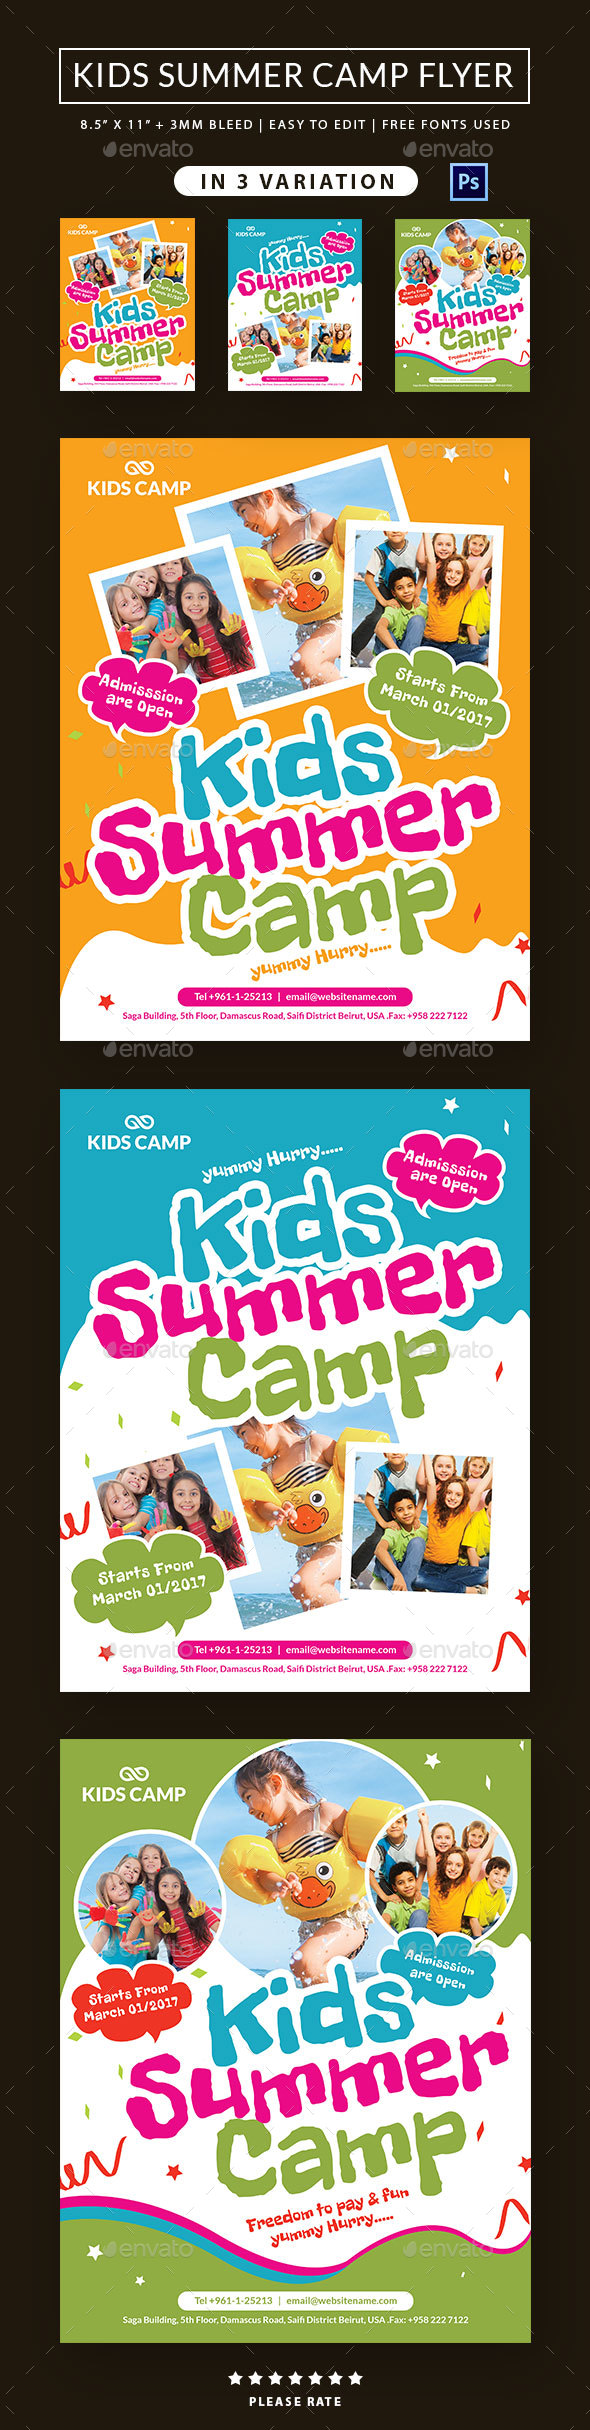 Summer Camp Flyer by Dhvxsyn | GraphicRiver